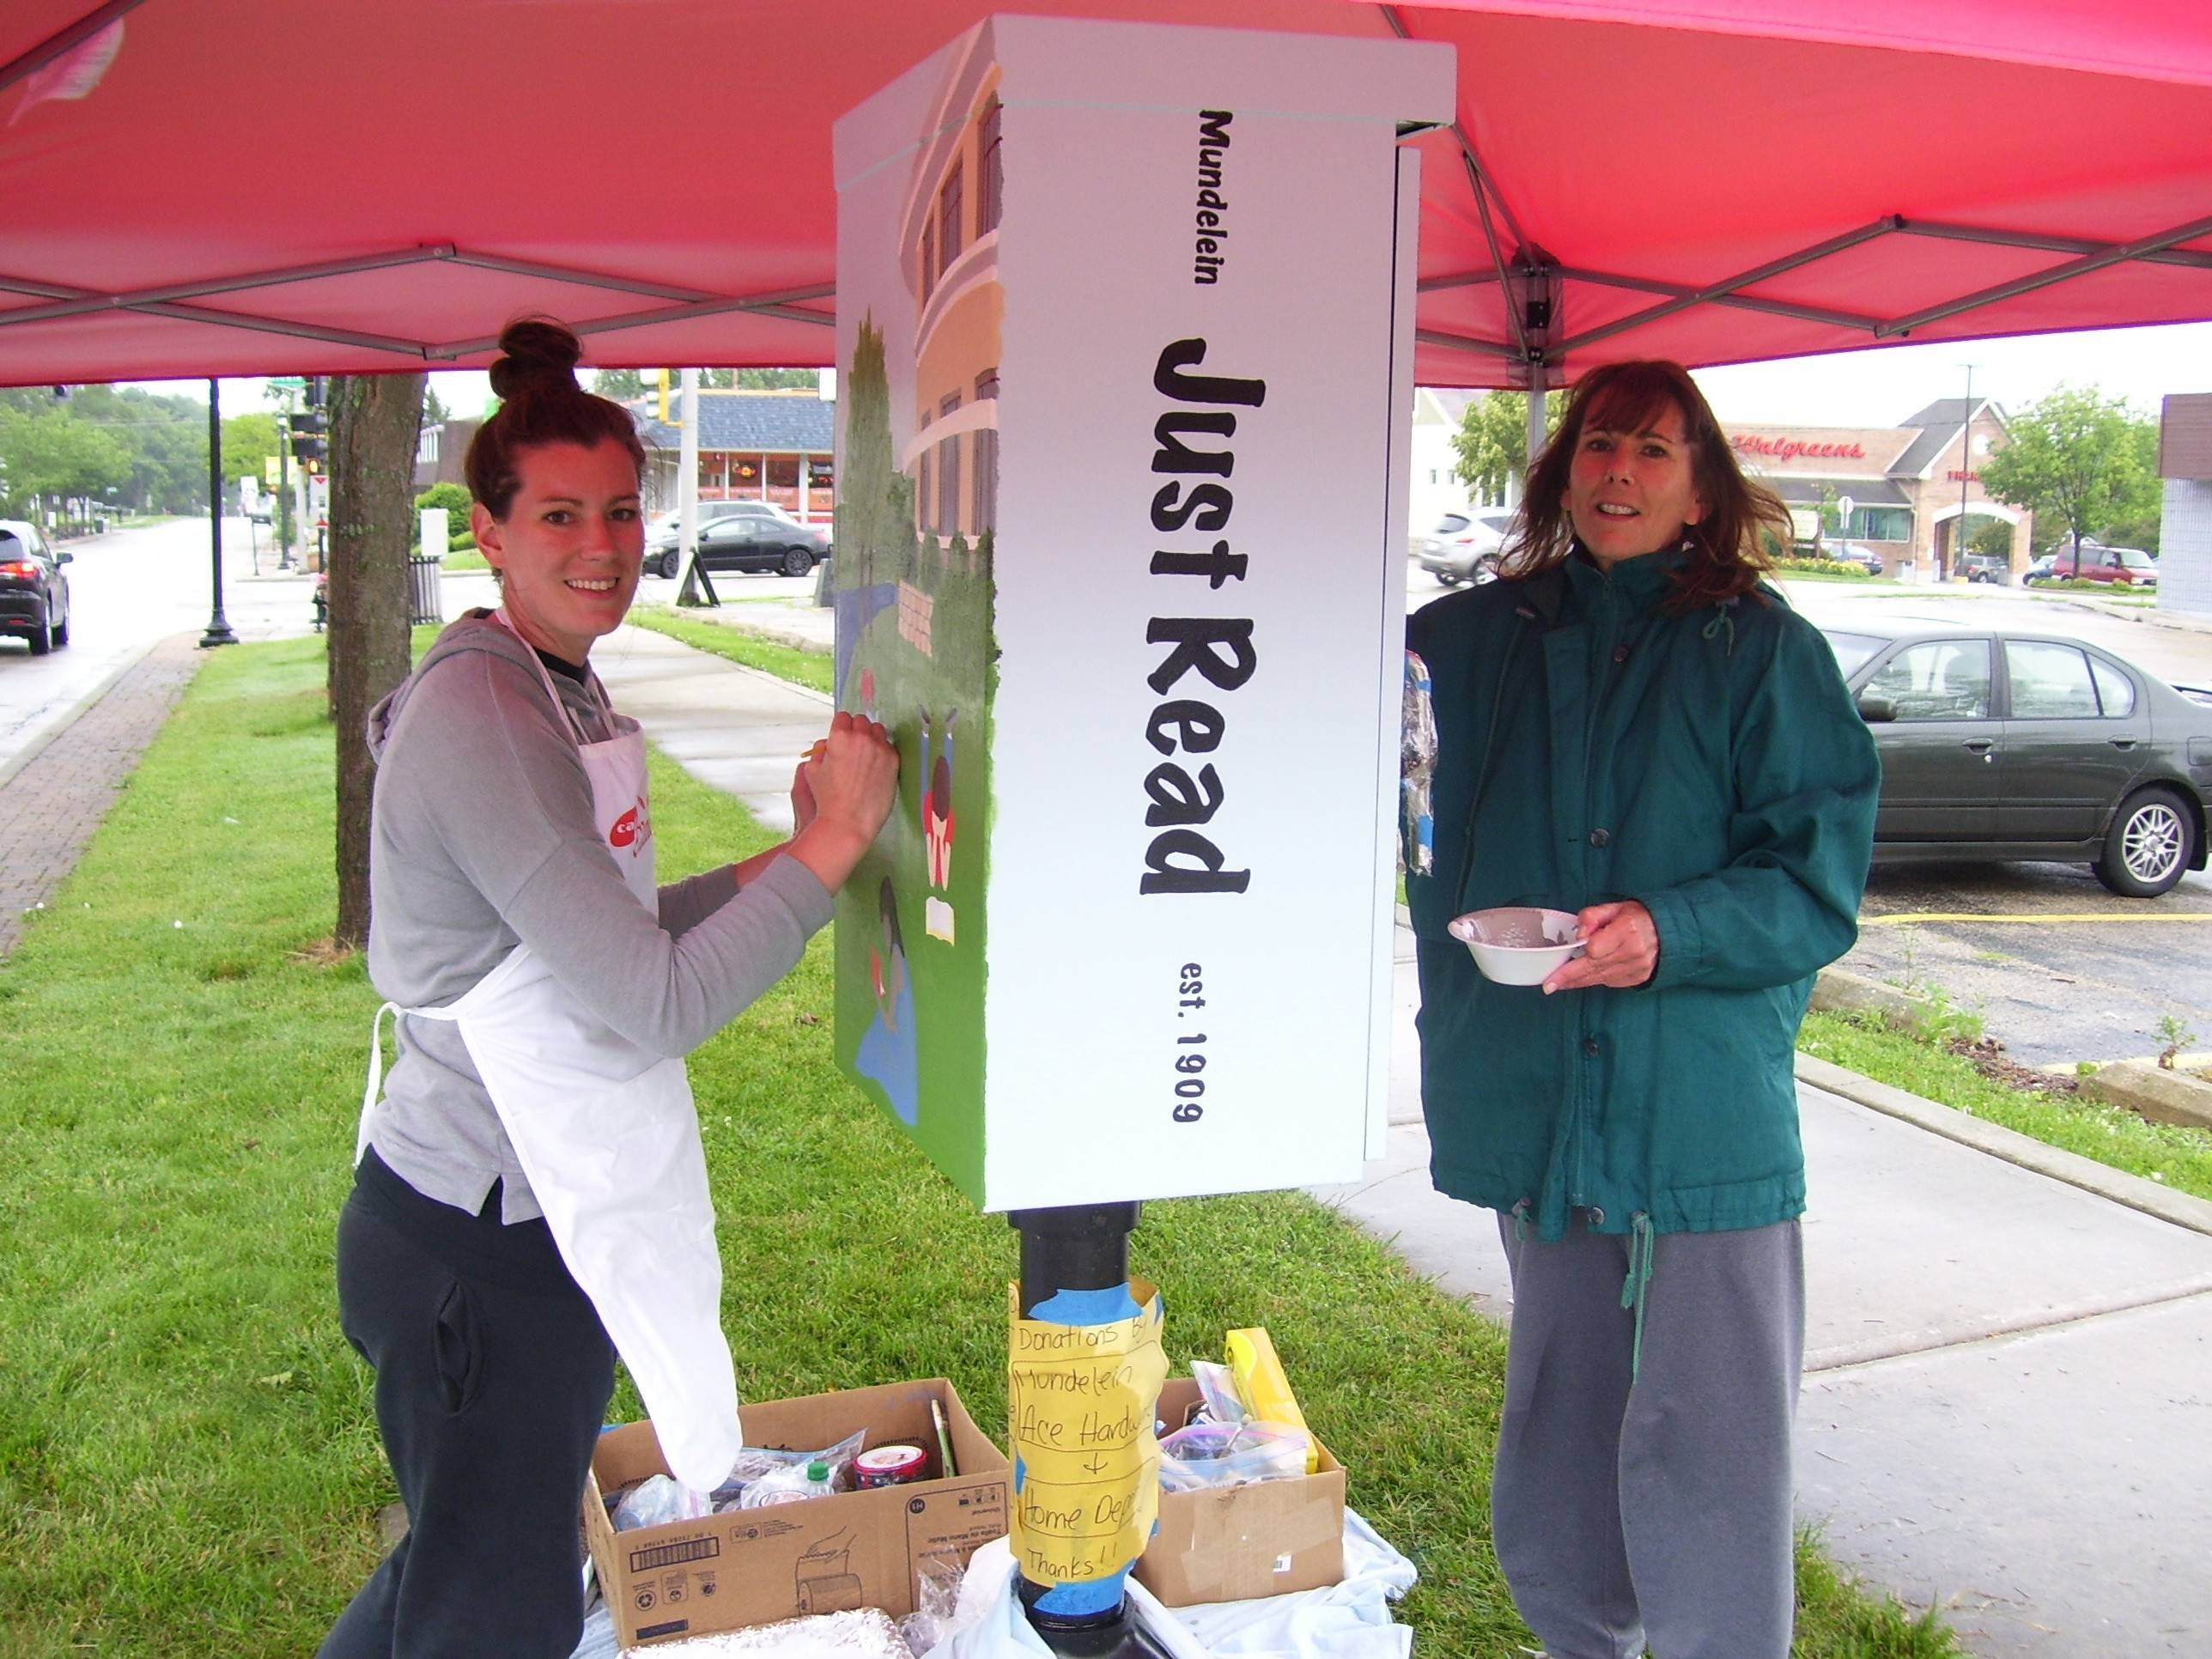 Artist Mary Hecht, right, and daughter Kristin Cropper paint a utility box on north Seymour Avenue in Mundelein as part of a public art project. The painting depicts children reading outside the Fremont Public Library and at a park.